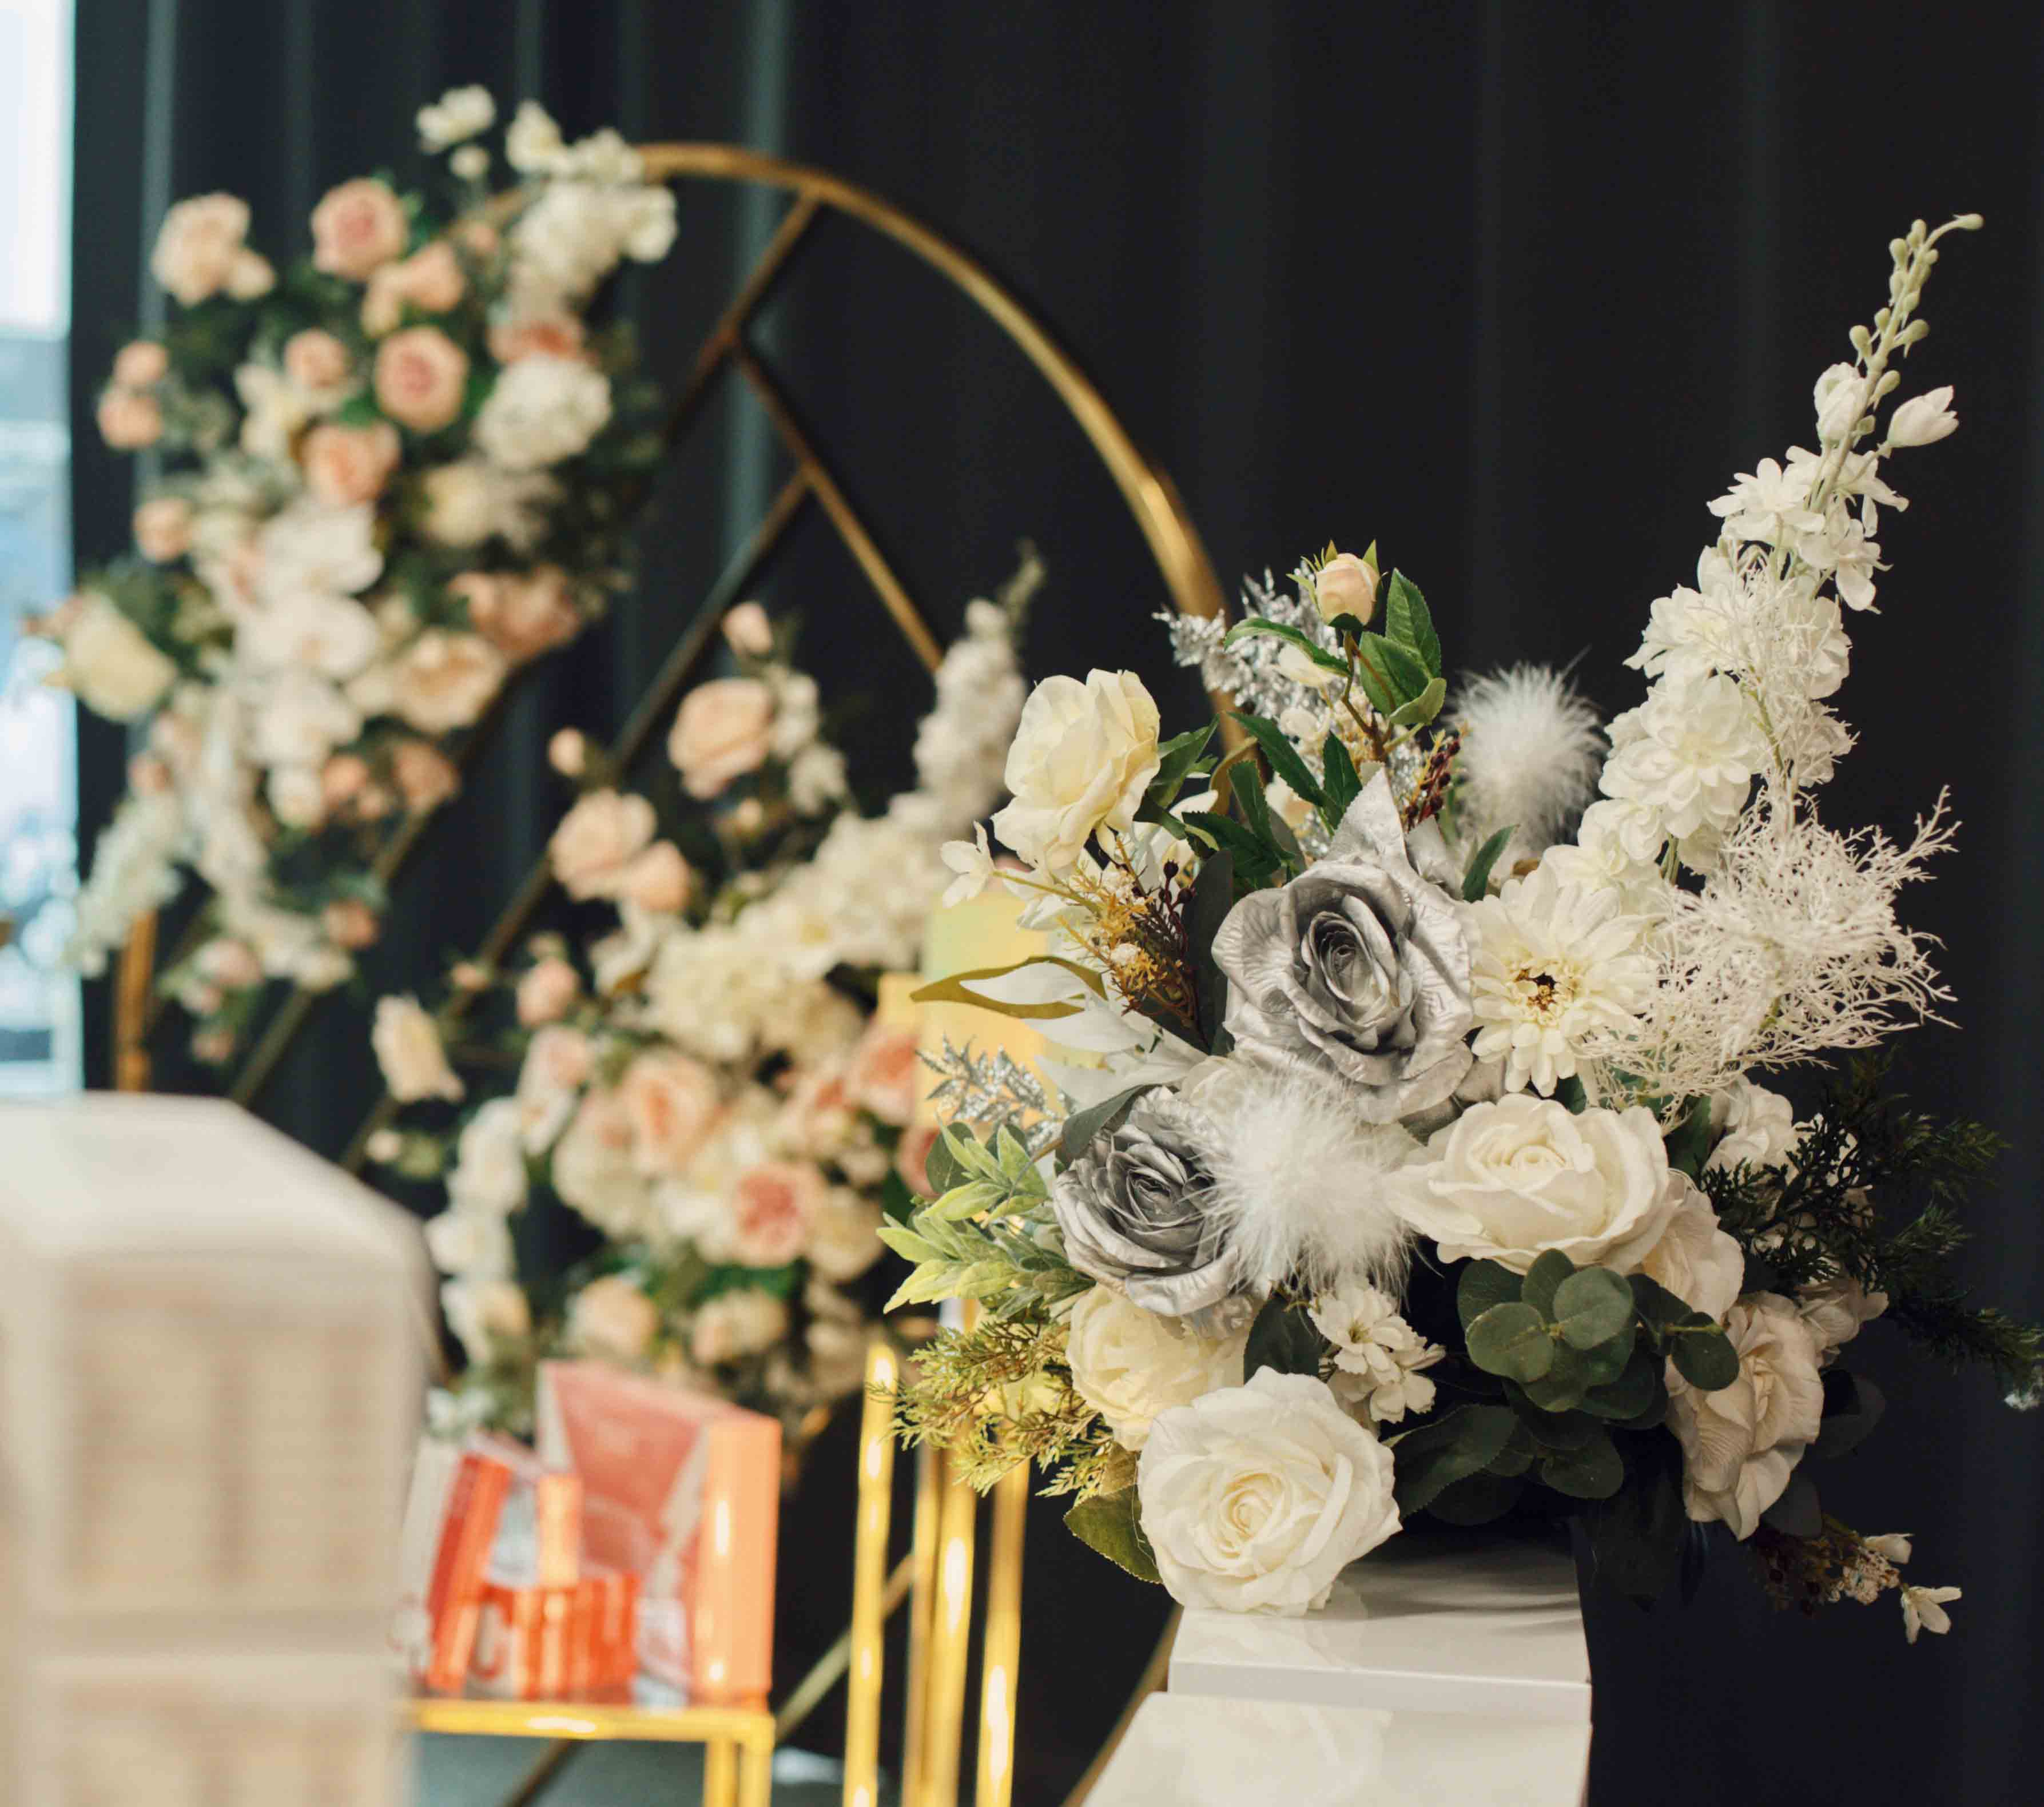 Props by Luxe Dream Event Hire / Table Flowers by Luxe Dream Floral Studio